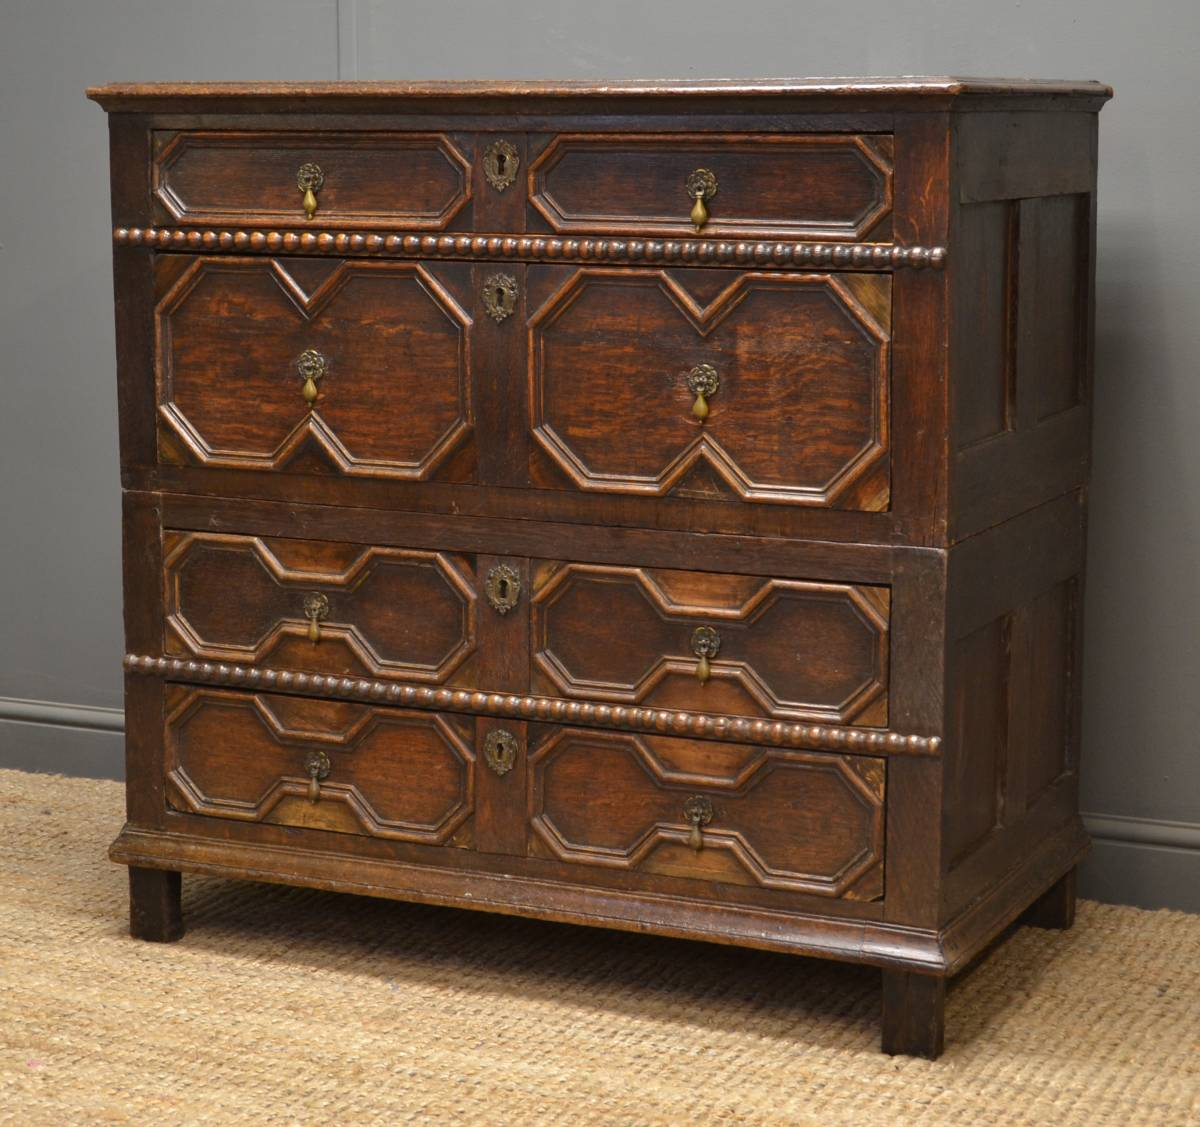 Identifying Antique Furniture